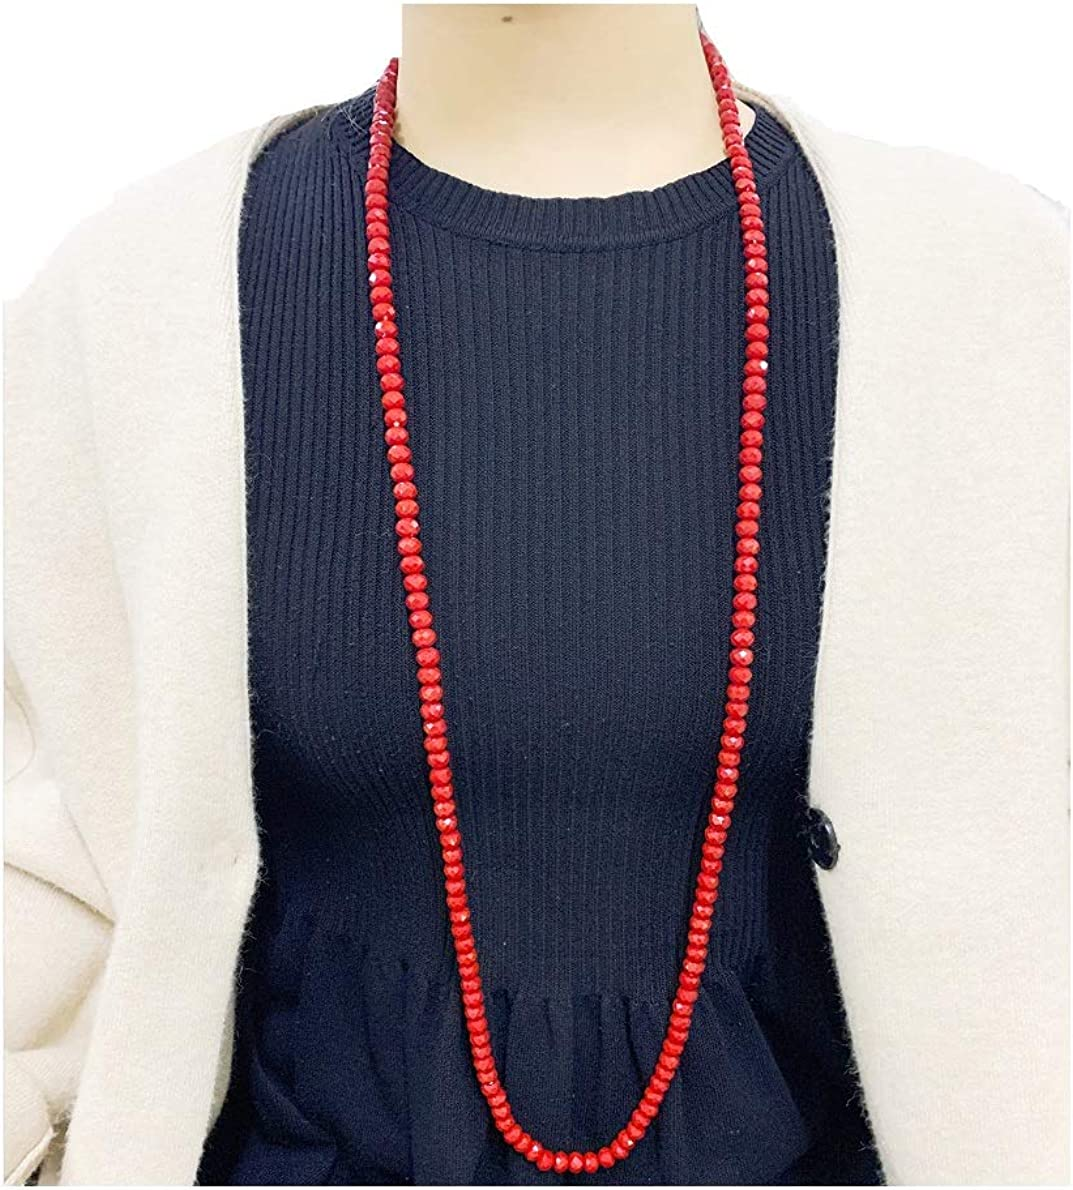 handmade long necklaces for women and girls Colorful crystal beaded cardigan necklace